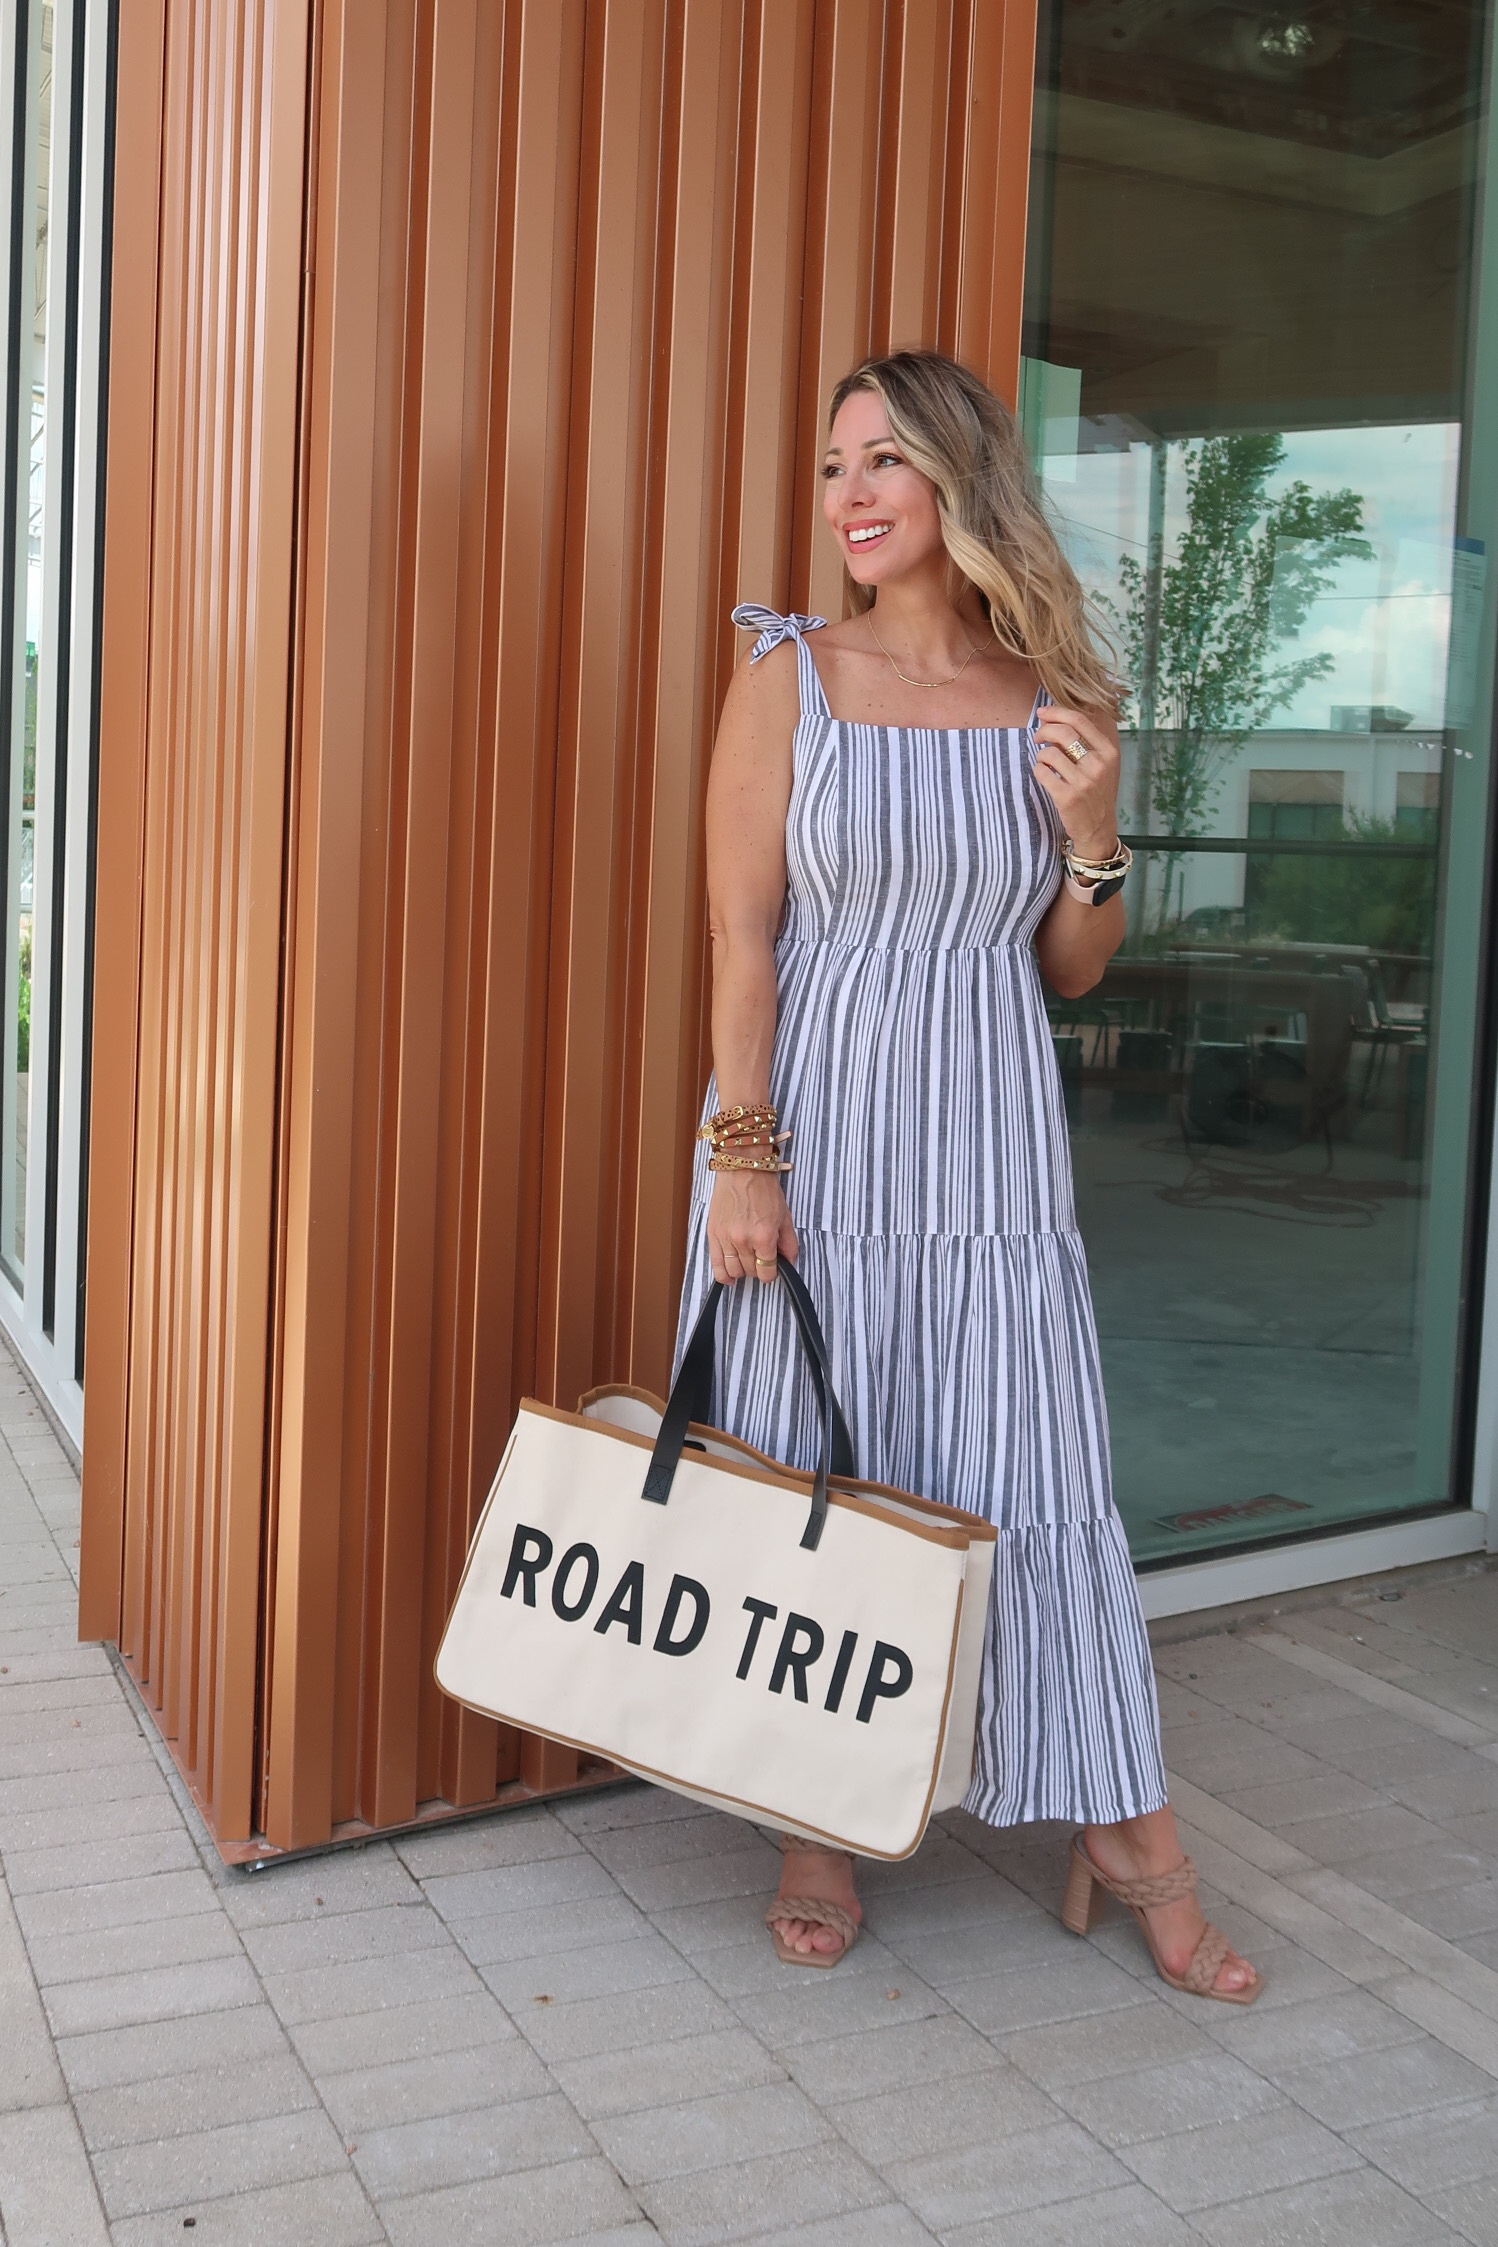 Stiped Tiered Dress, Road Trip Tote Bag